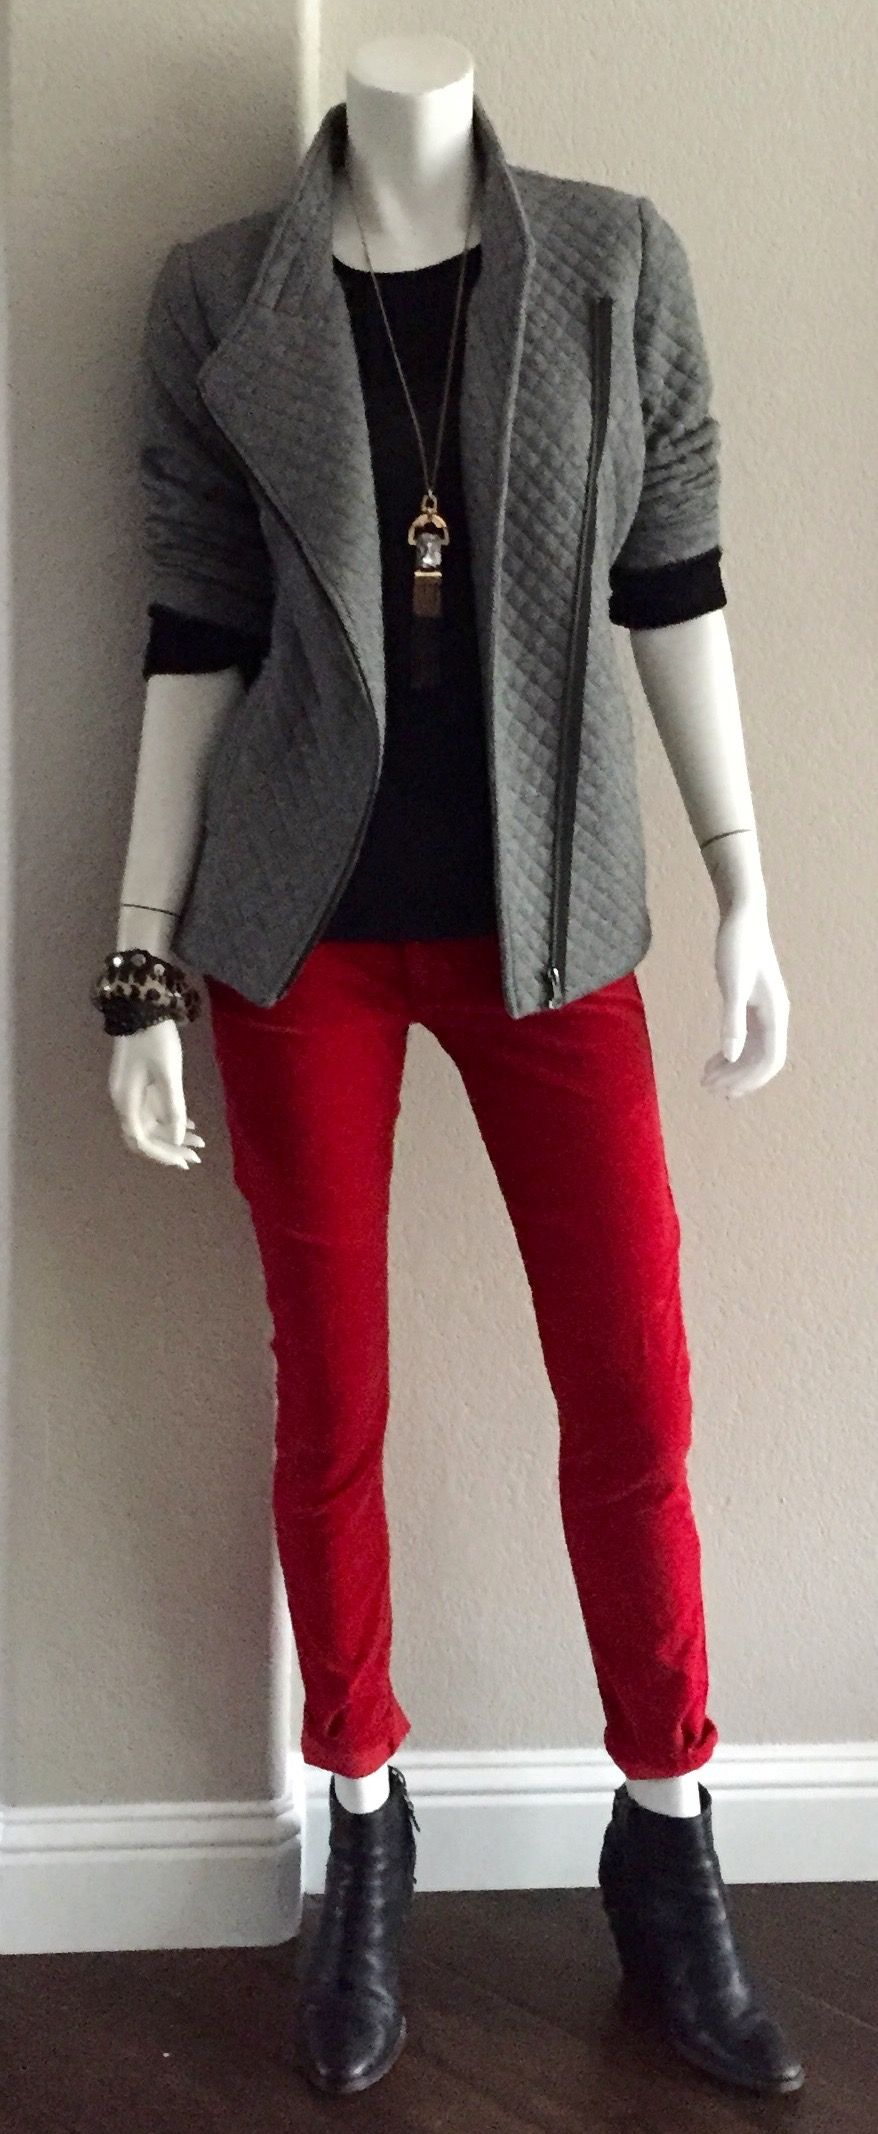 cabi Scarlet Cord, Bustier Top & Quilted Moto Jacket #cabiclothing